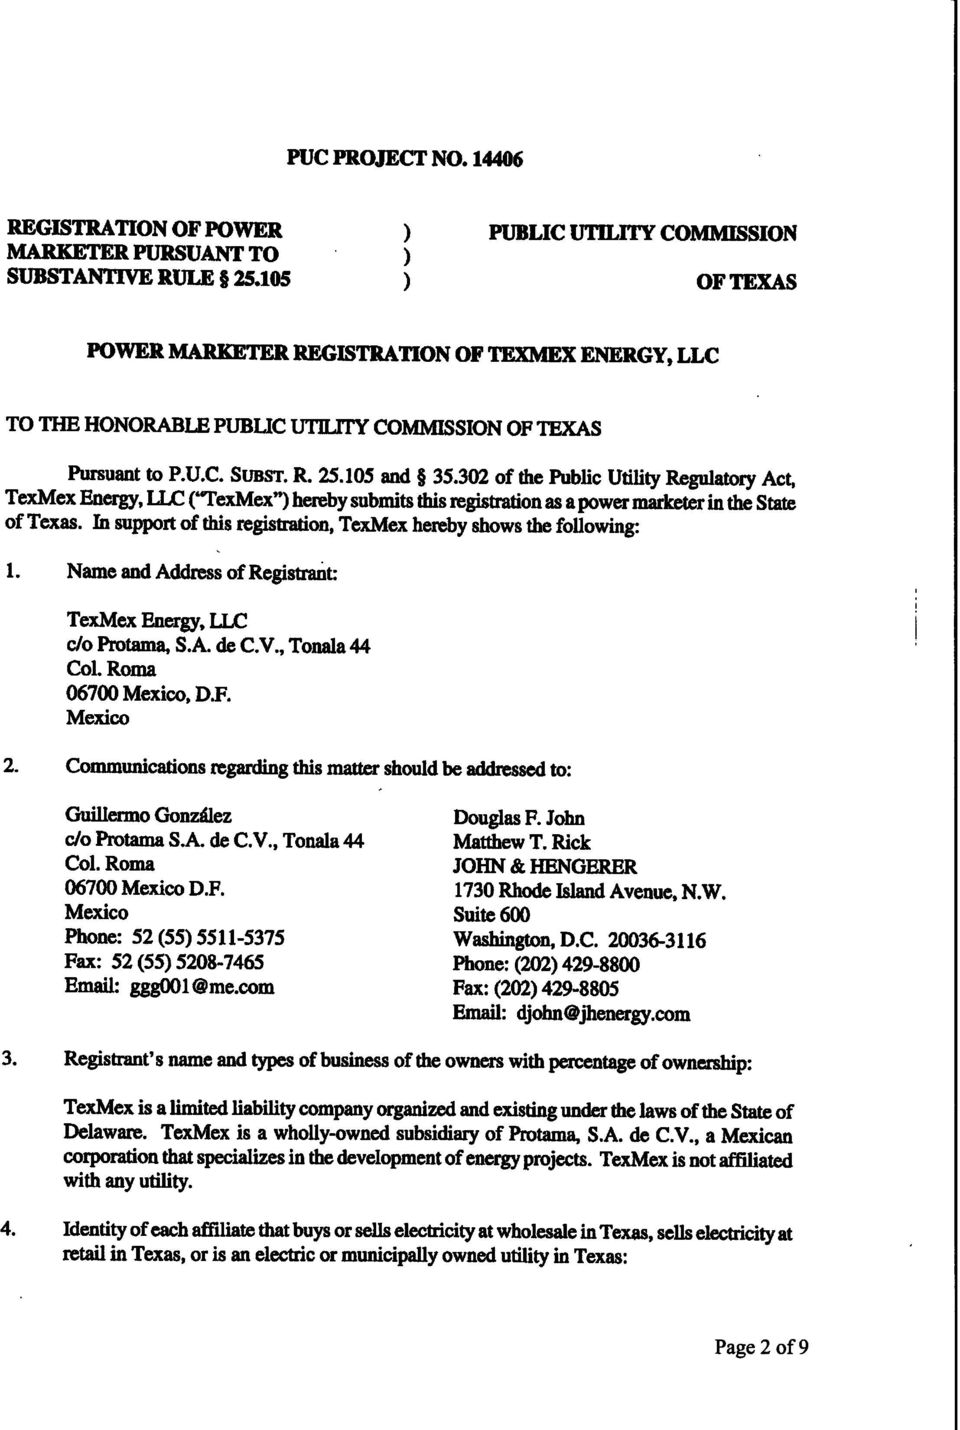 "302 of the Public Utility Regulatory Act, TexMex Energy, LLC CrexMex"") hereby submits this registration as a power marketer in the State of Texas."